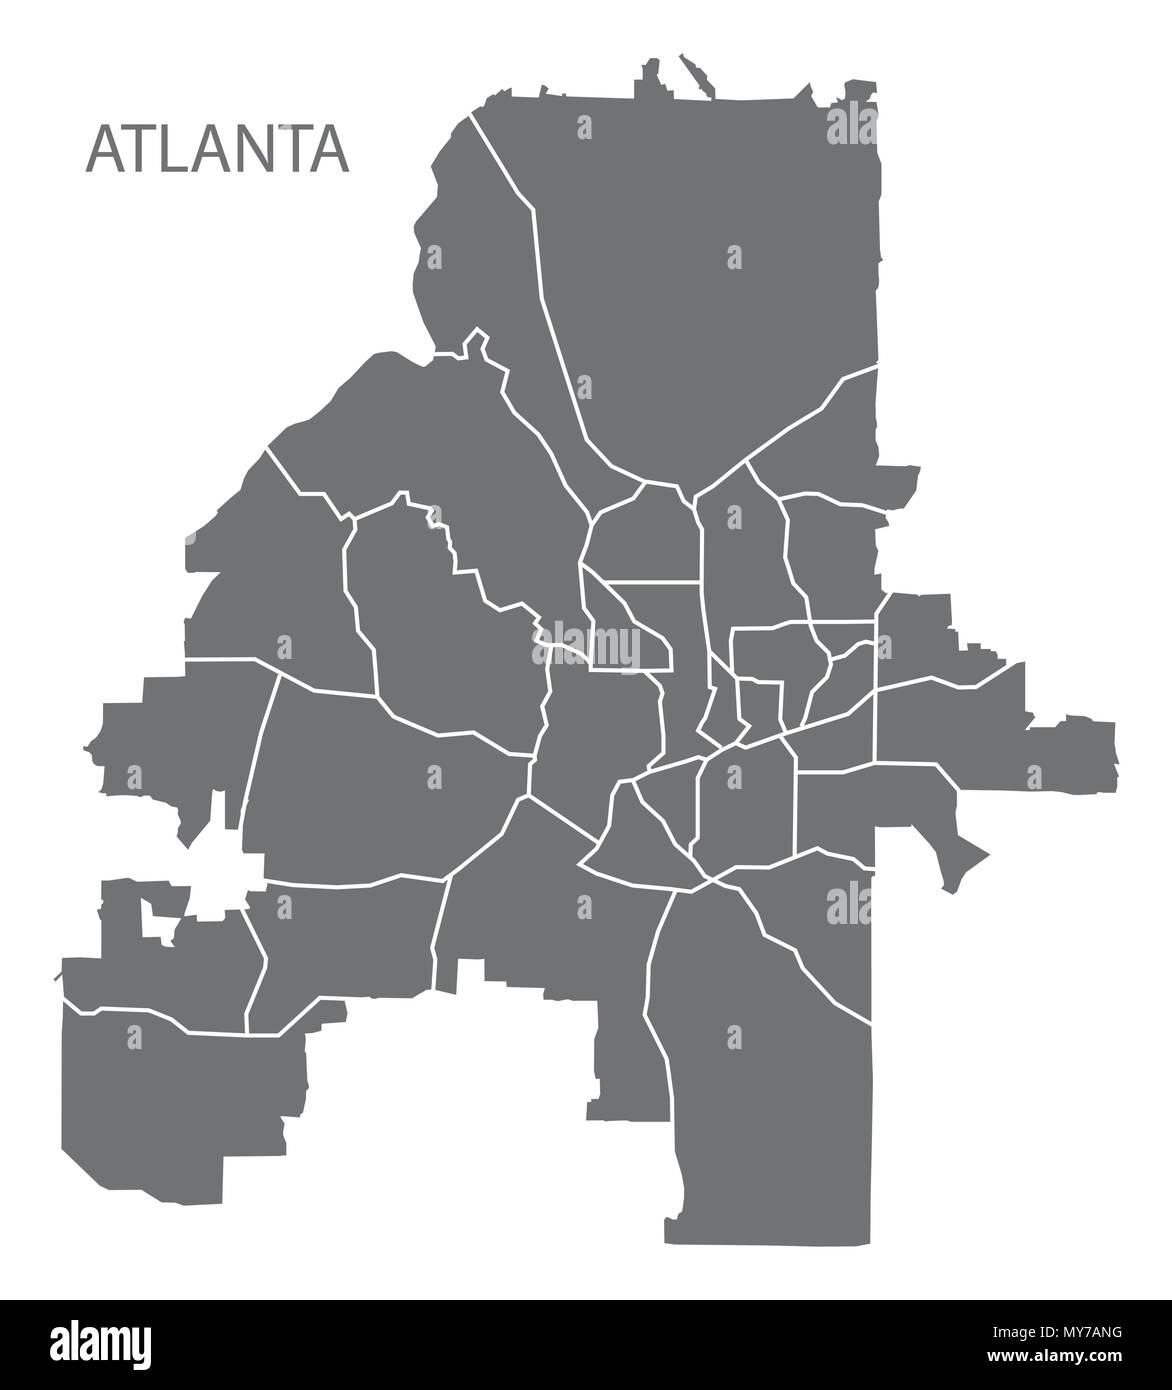 Atlanta Georgia City Map With Neighborhoods Grey Illustration